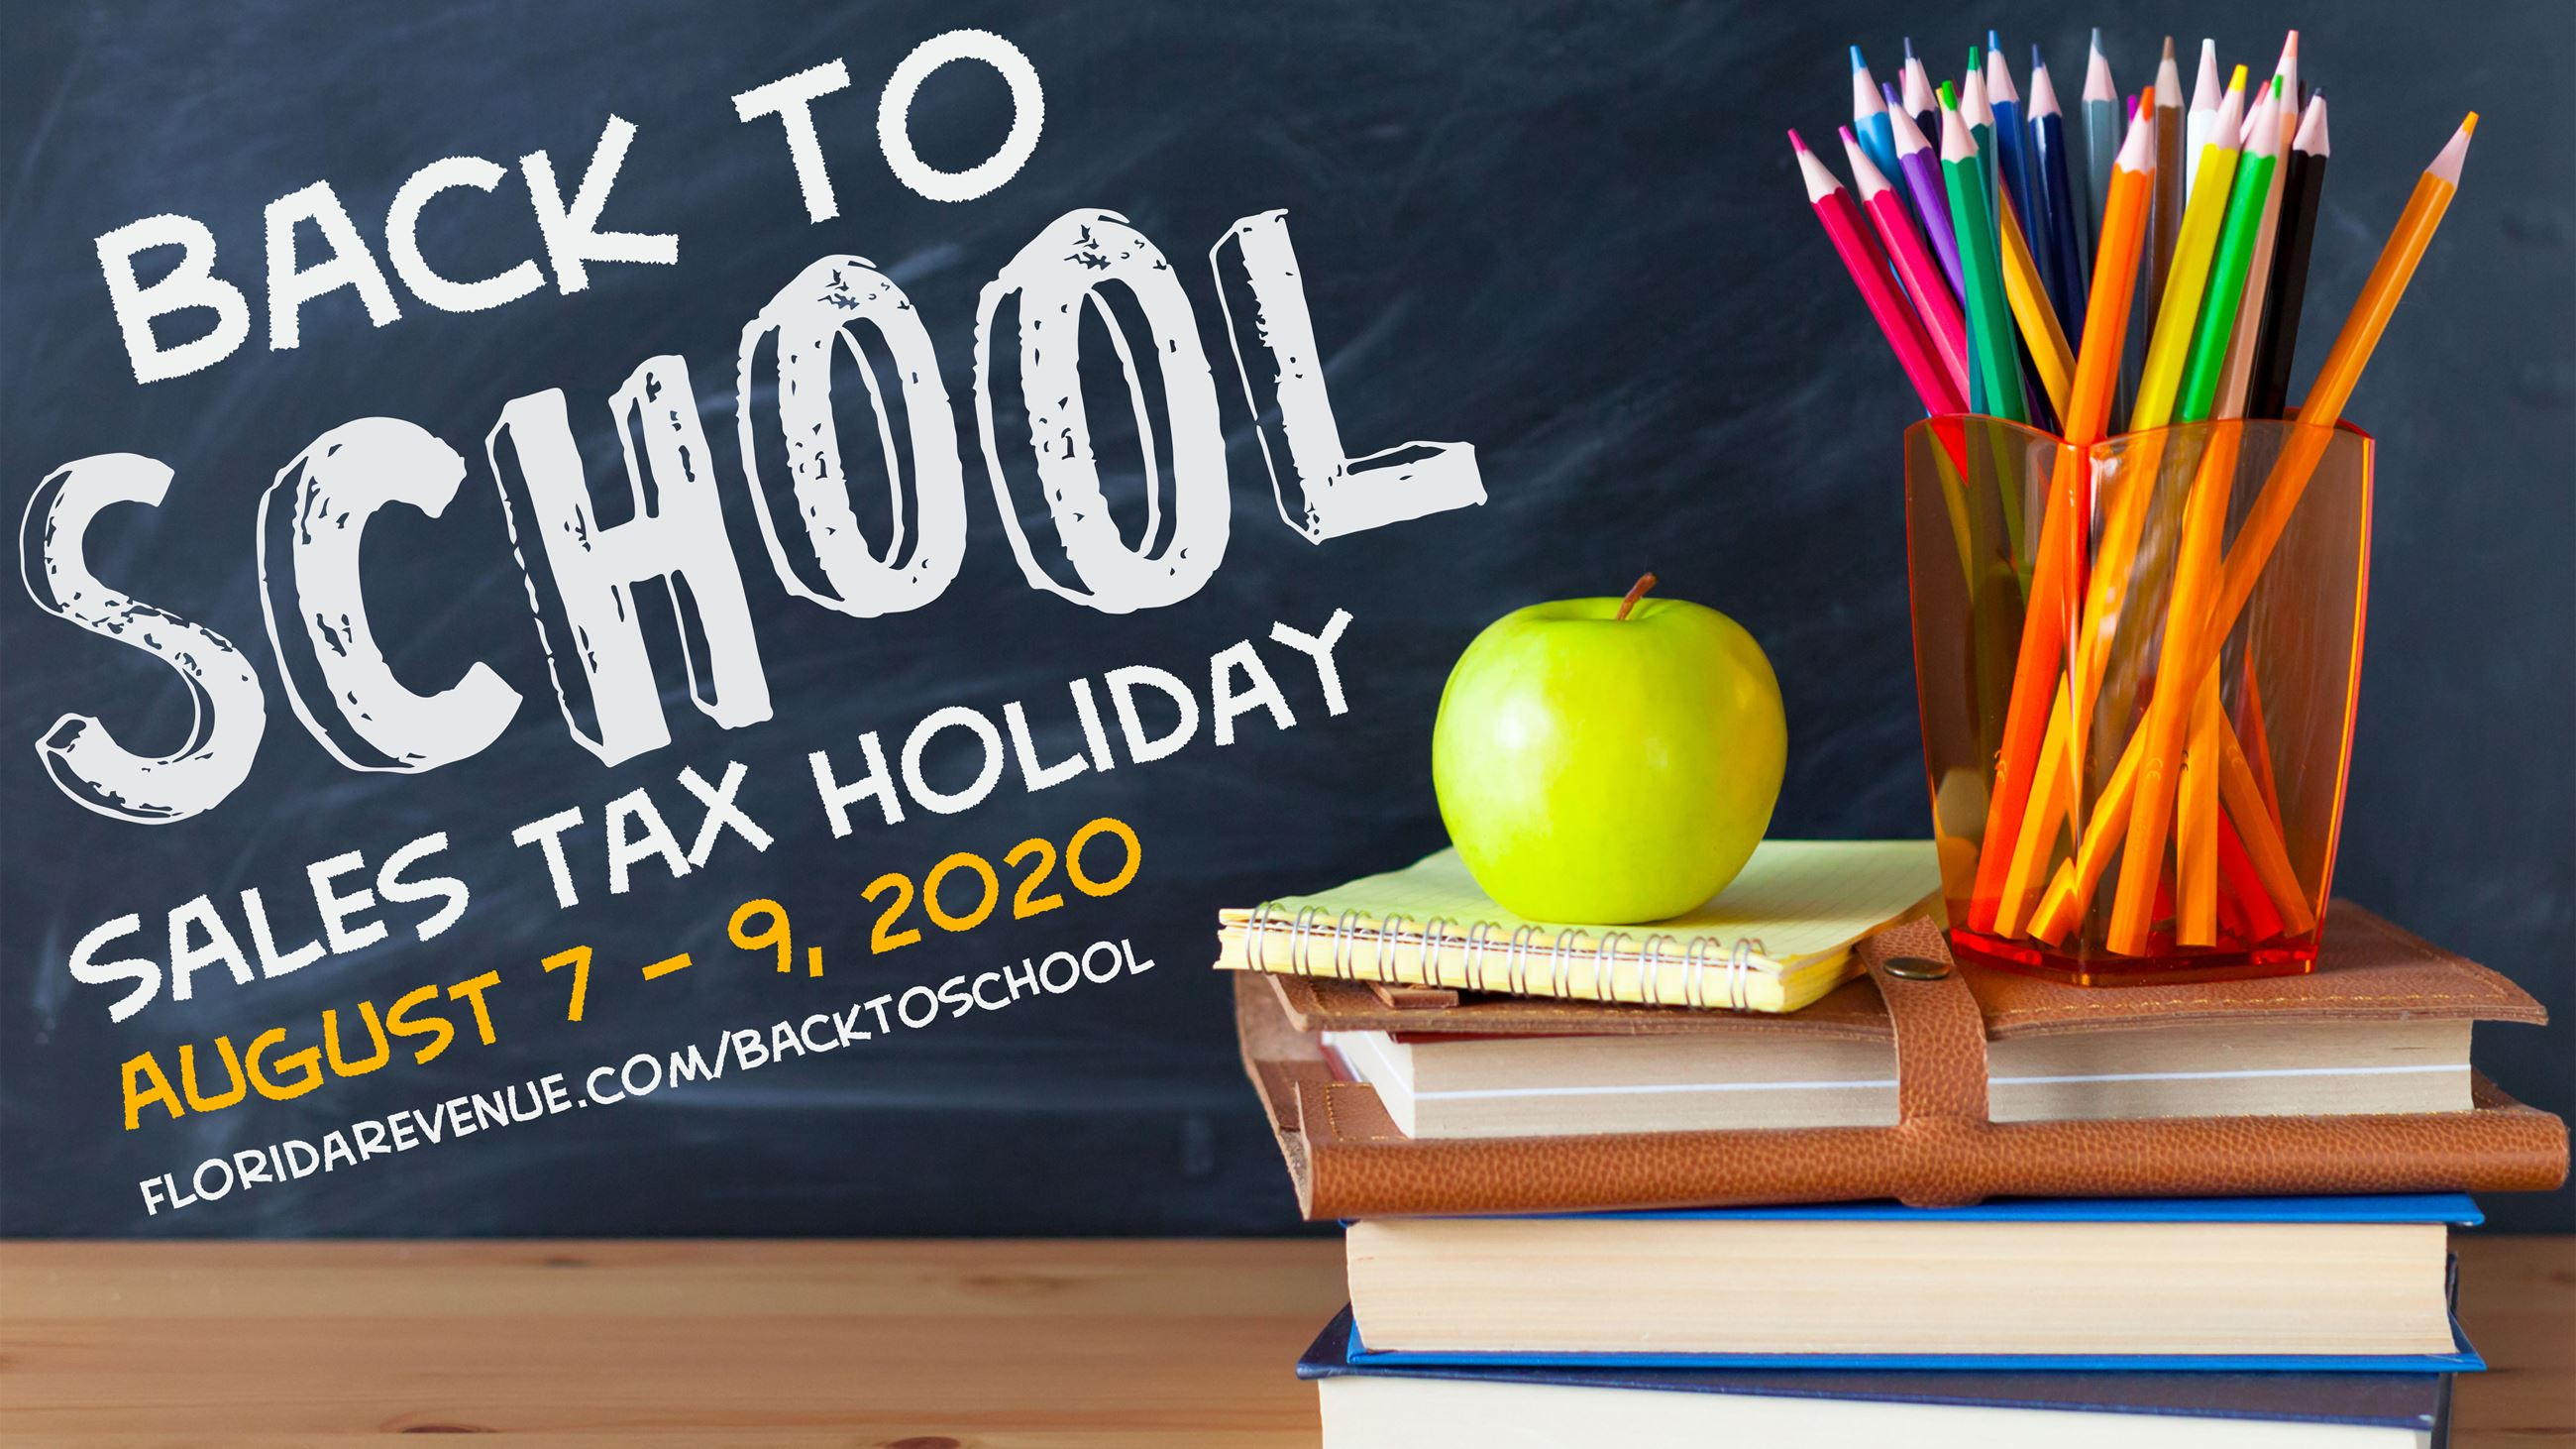 BackToSchoolTaxHoliday2020_twitter